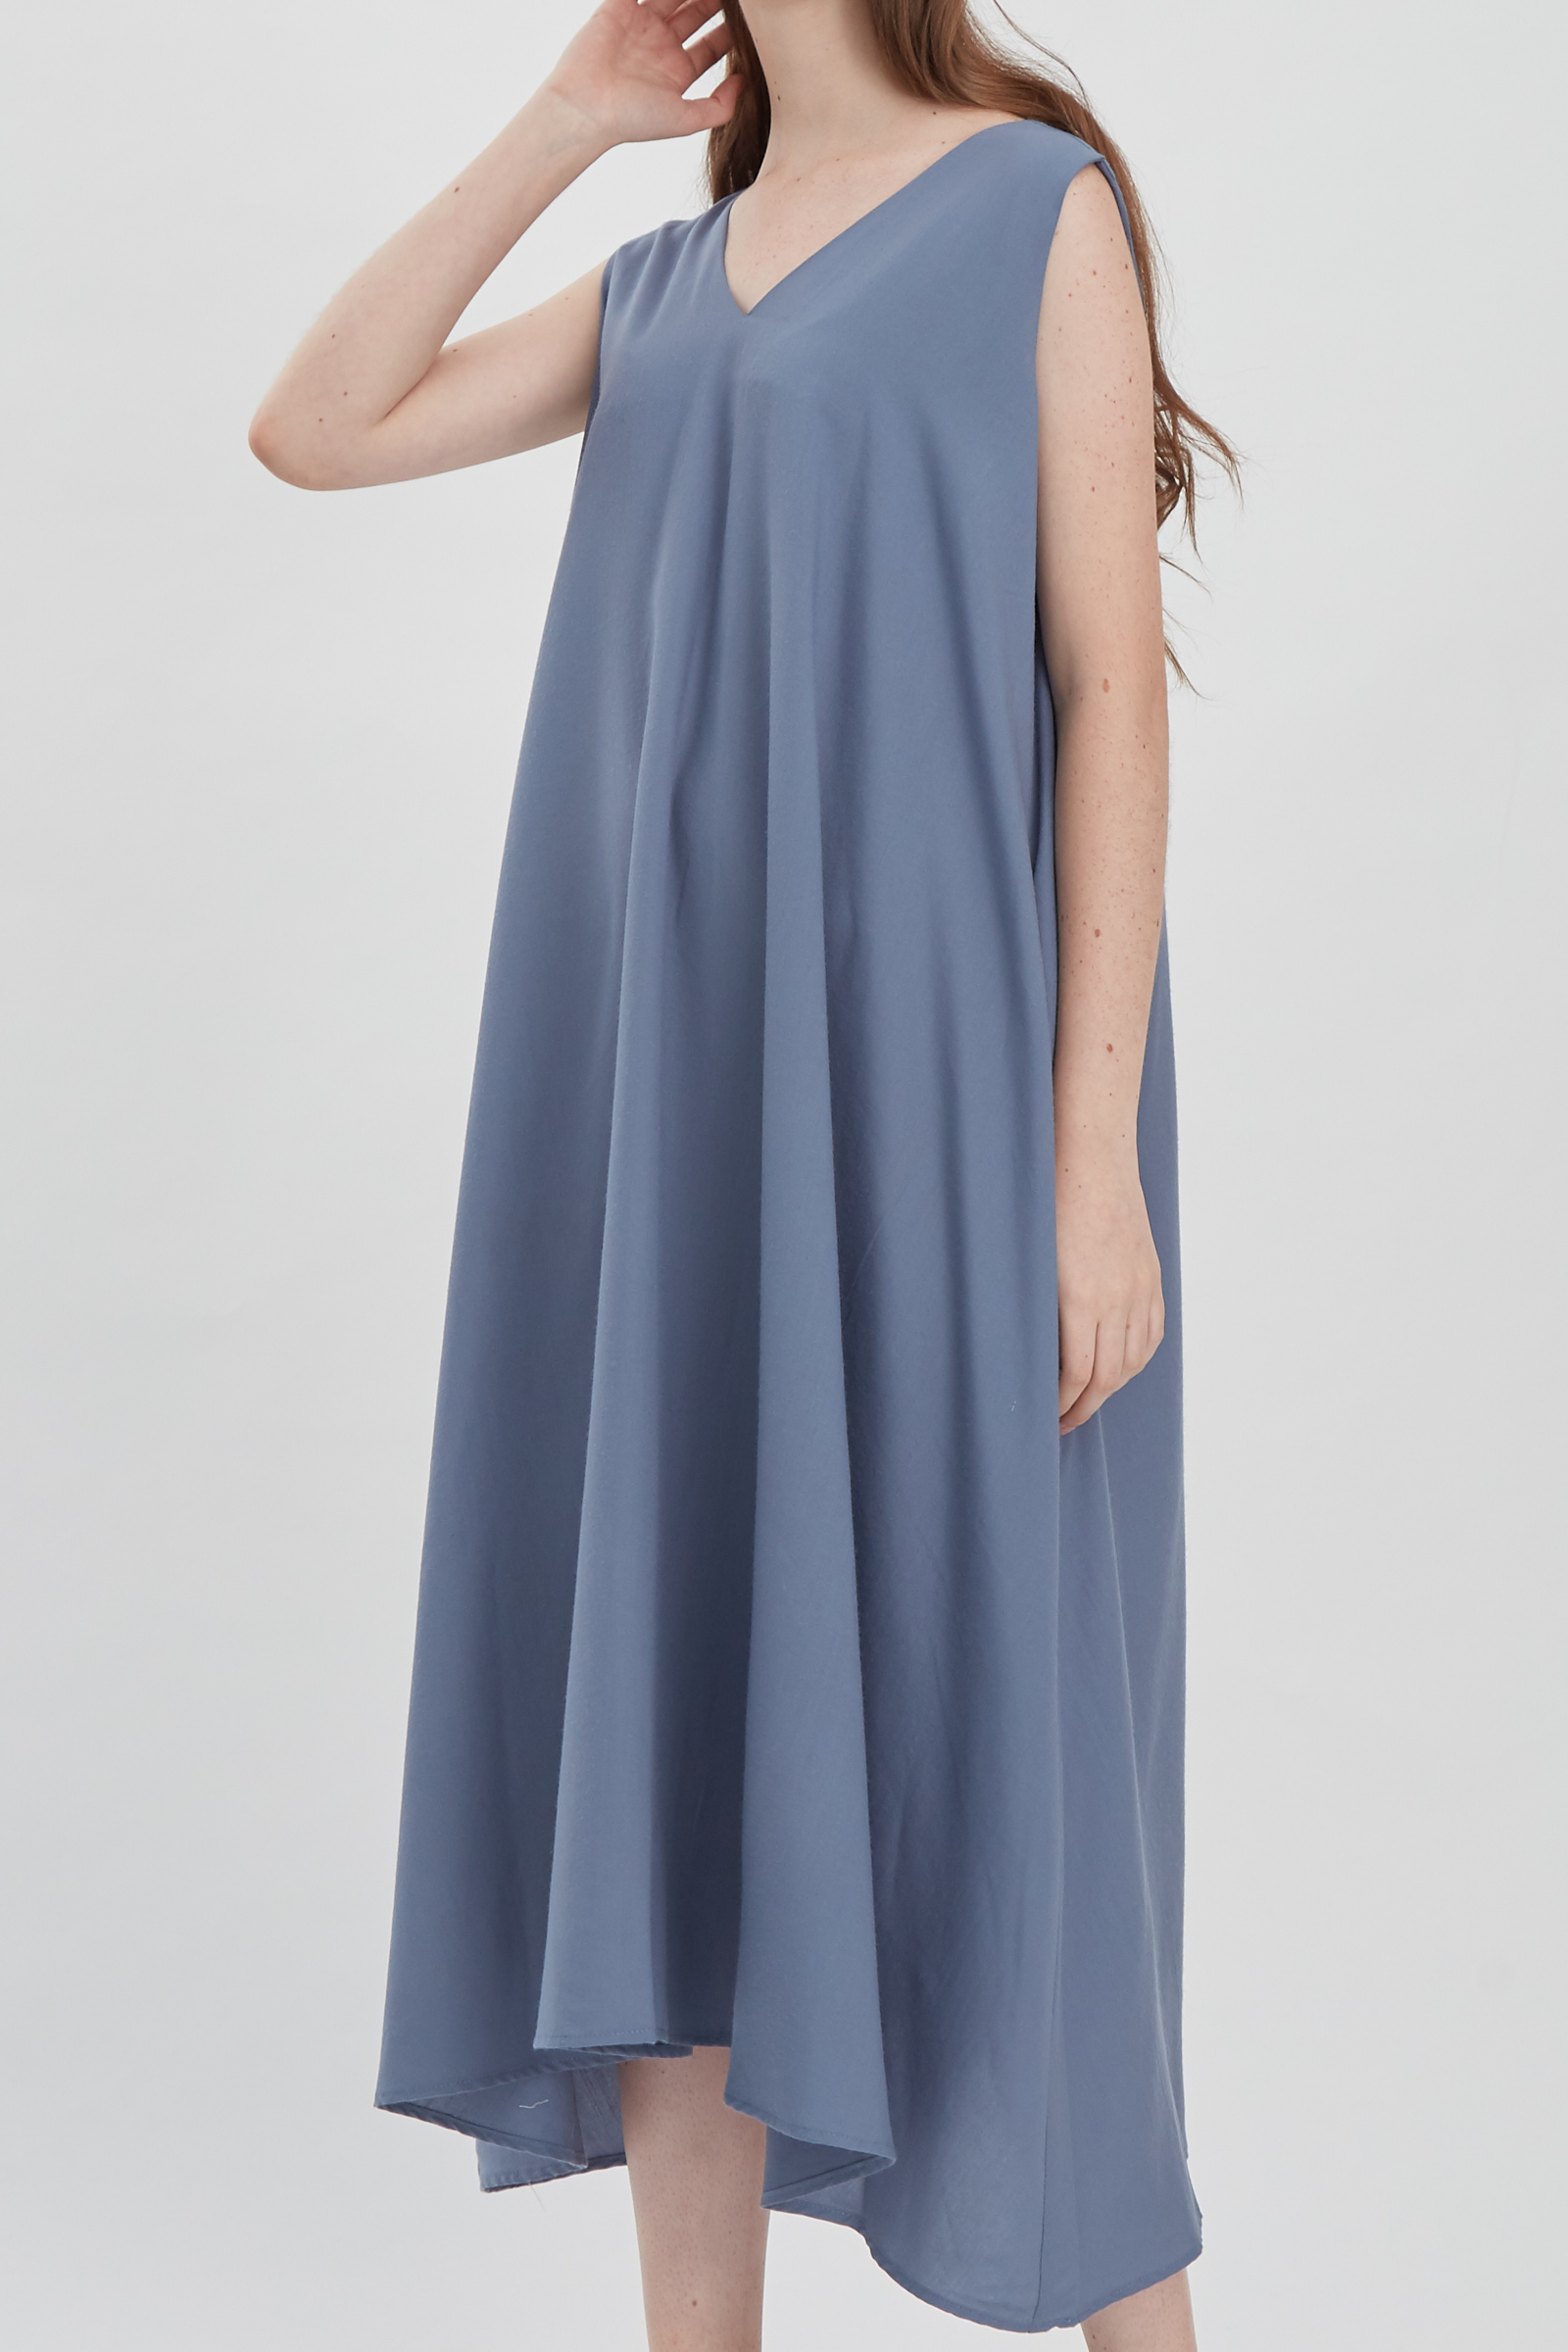 Shopatvelvet Vega Dress Ice Blue